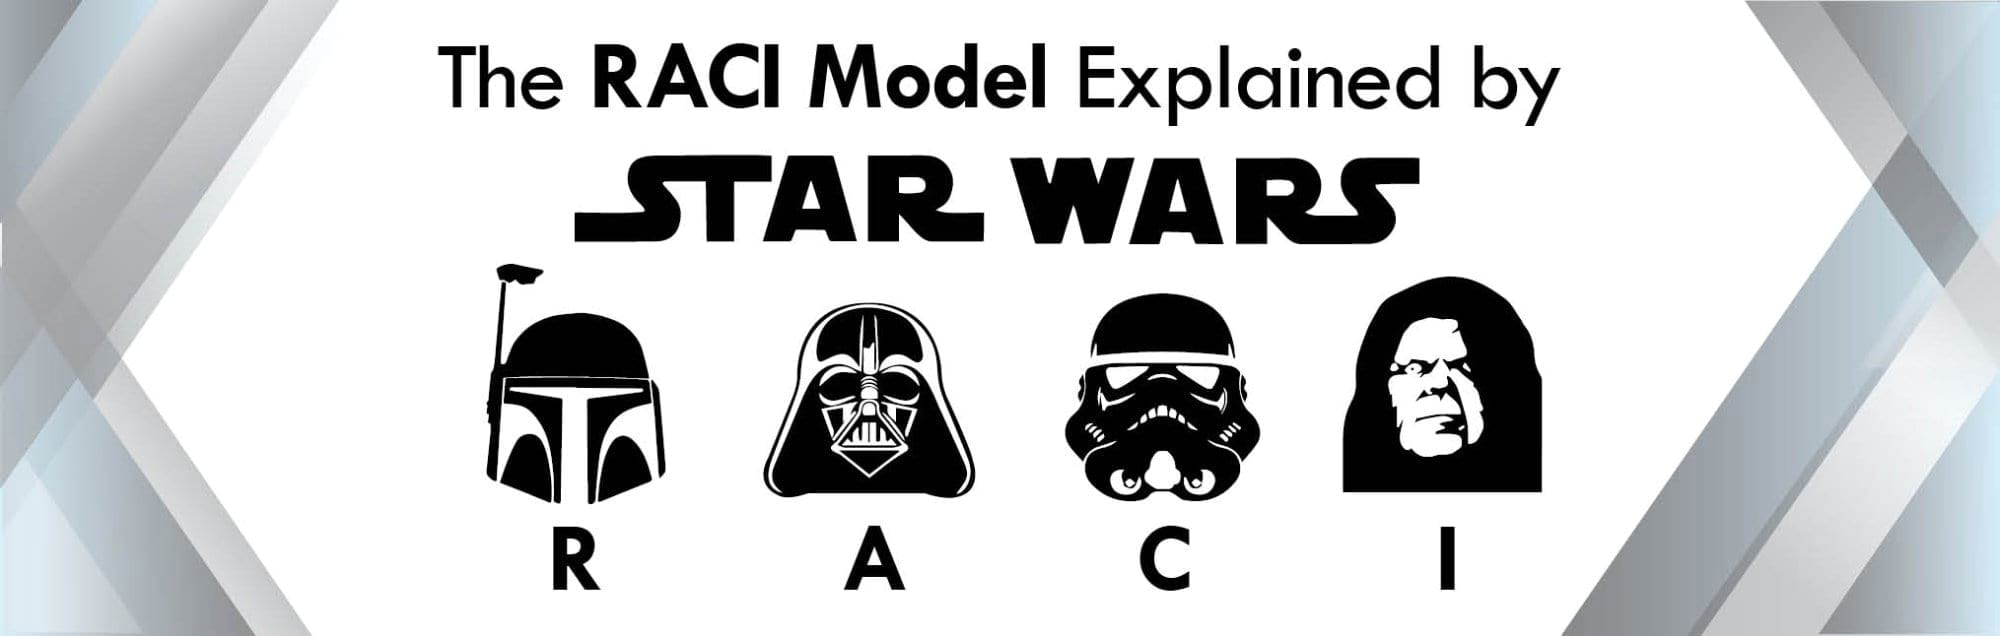 RACI Model by Star Wars